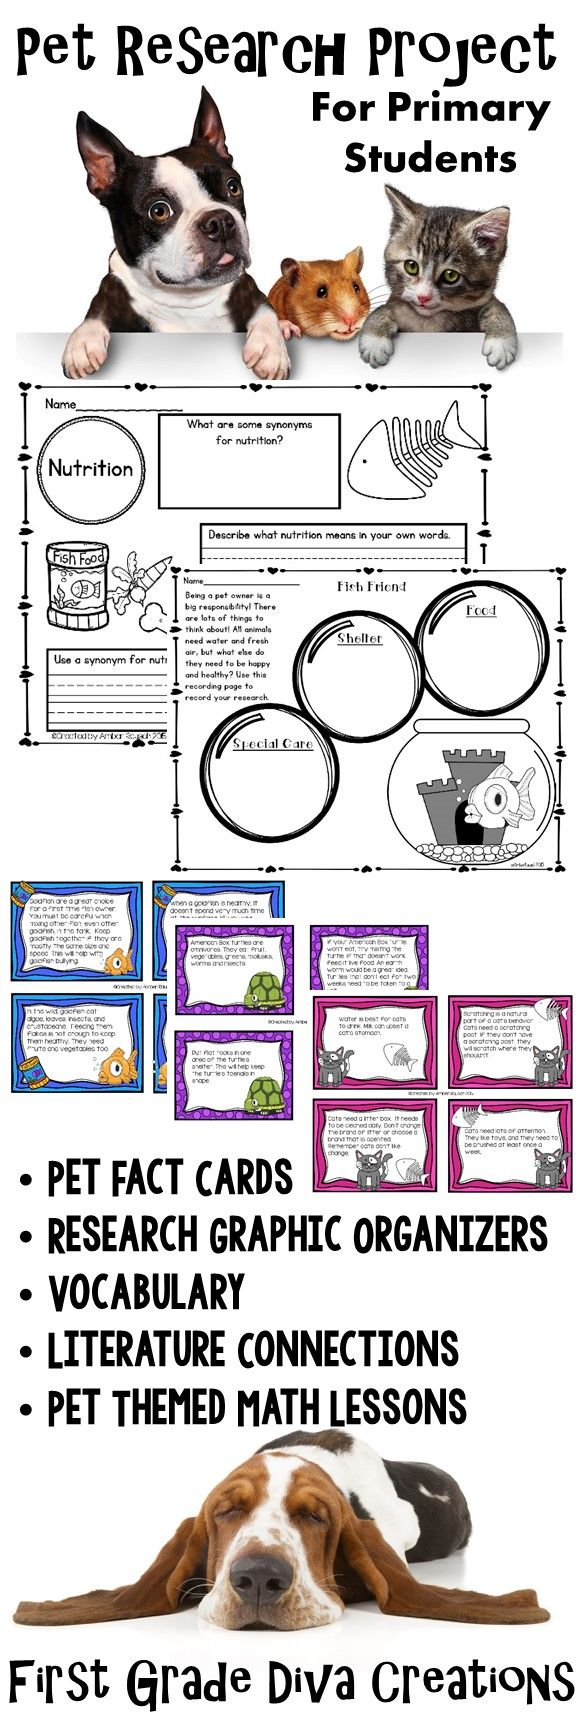 $ Looking for a highly engaging research project for kids? Kids love pets, and my students were very motivated to research and write about a pet that was just right for them. This unit was a so much fun to teach in my own classroom. Grab it for your classroom today!